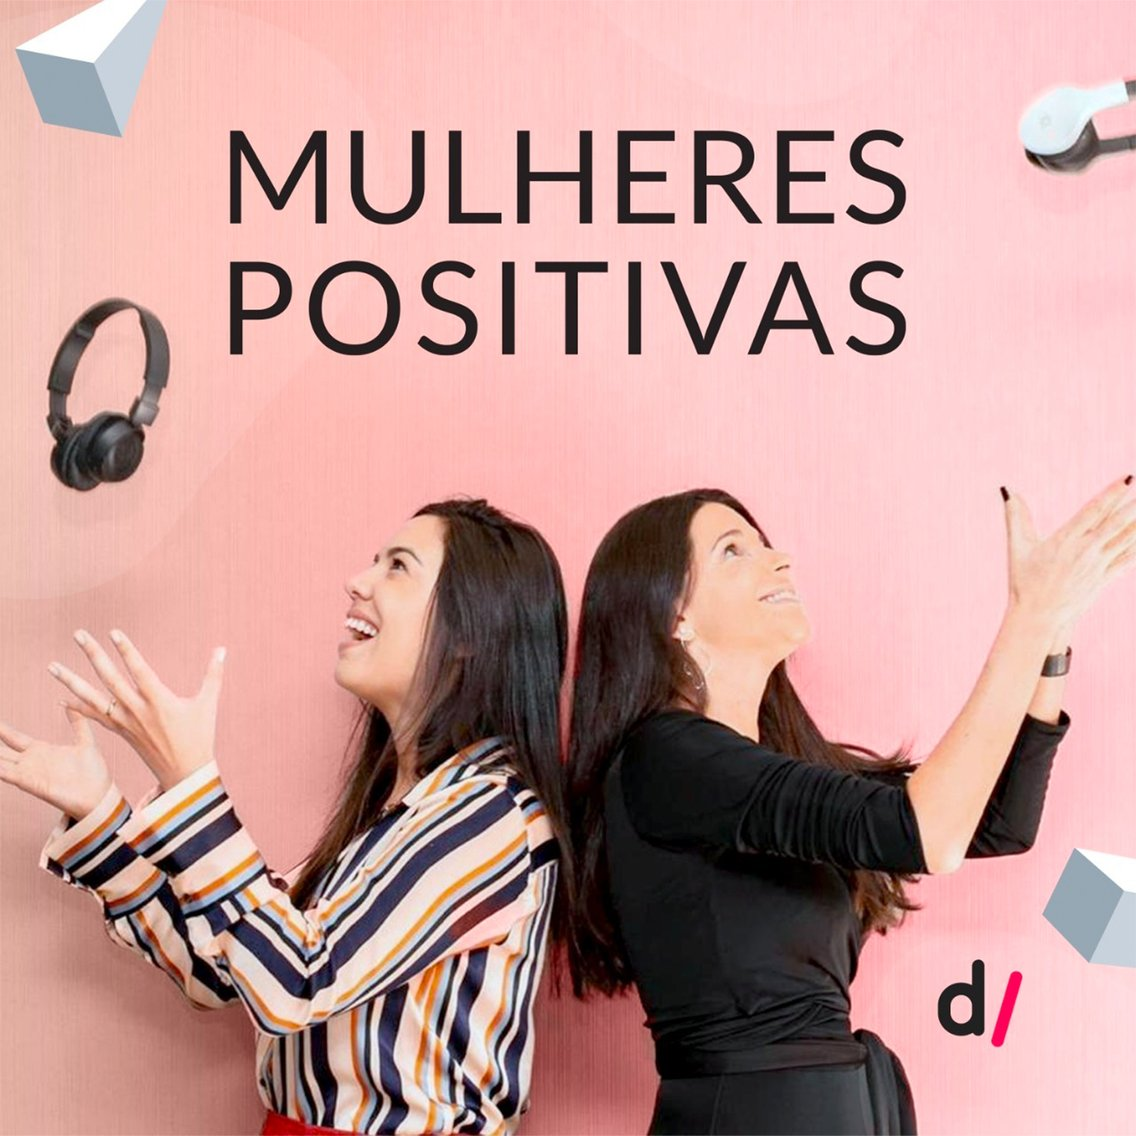 Mulheres Positivas - Cover Image